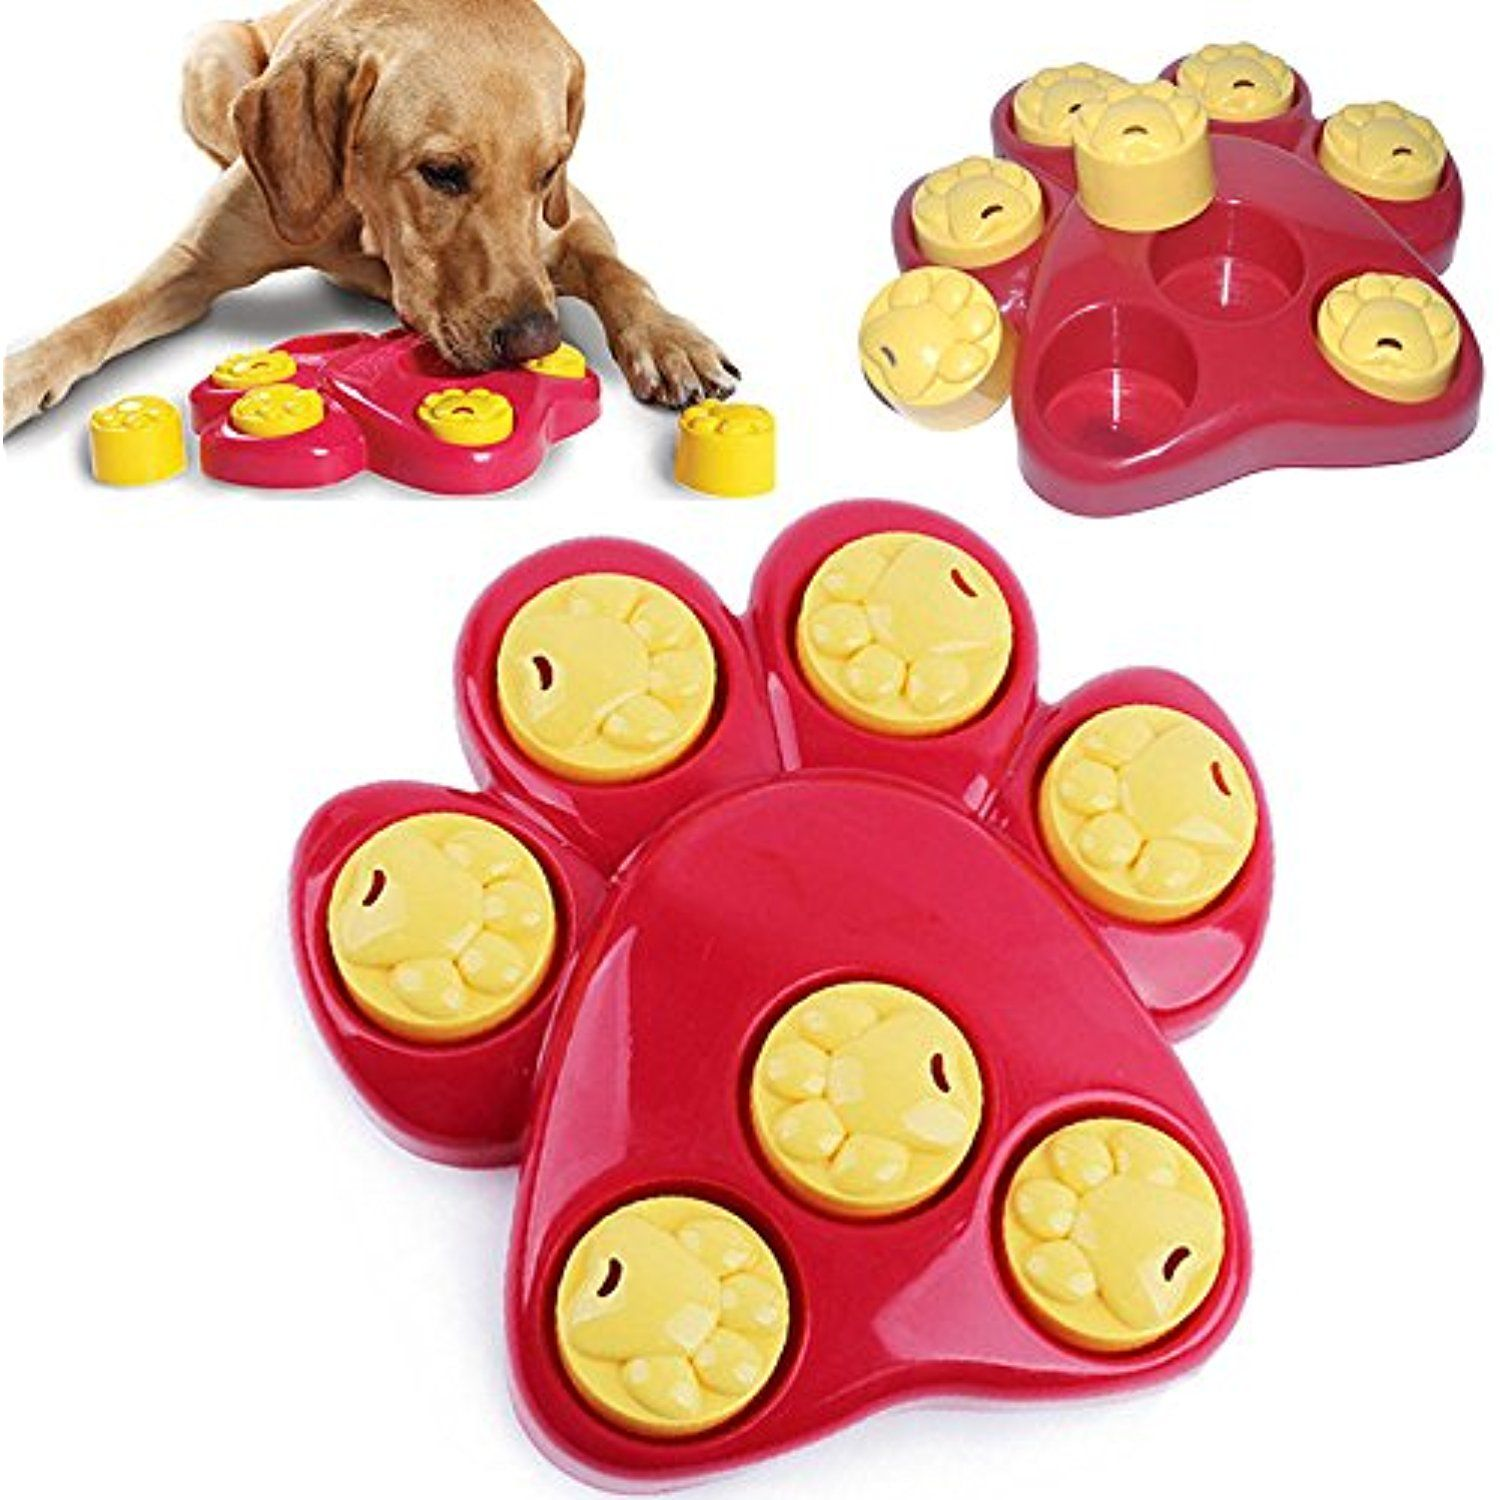 Outward Hound Paw Hide Puzzle Toy Scent Training Treat Pet Dog